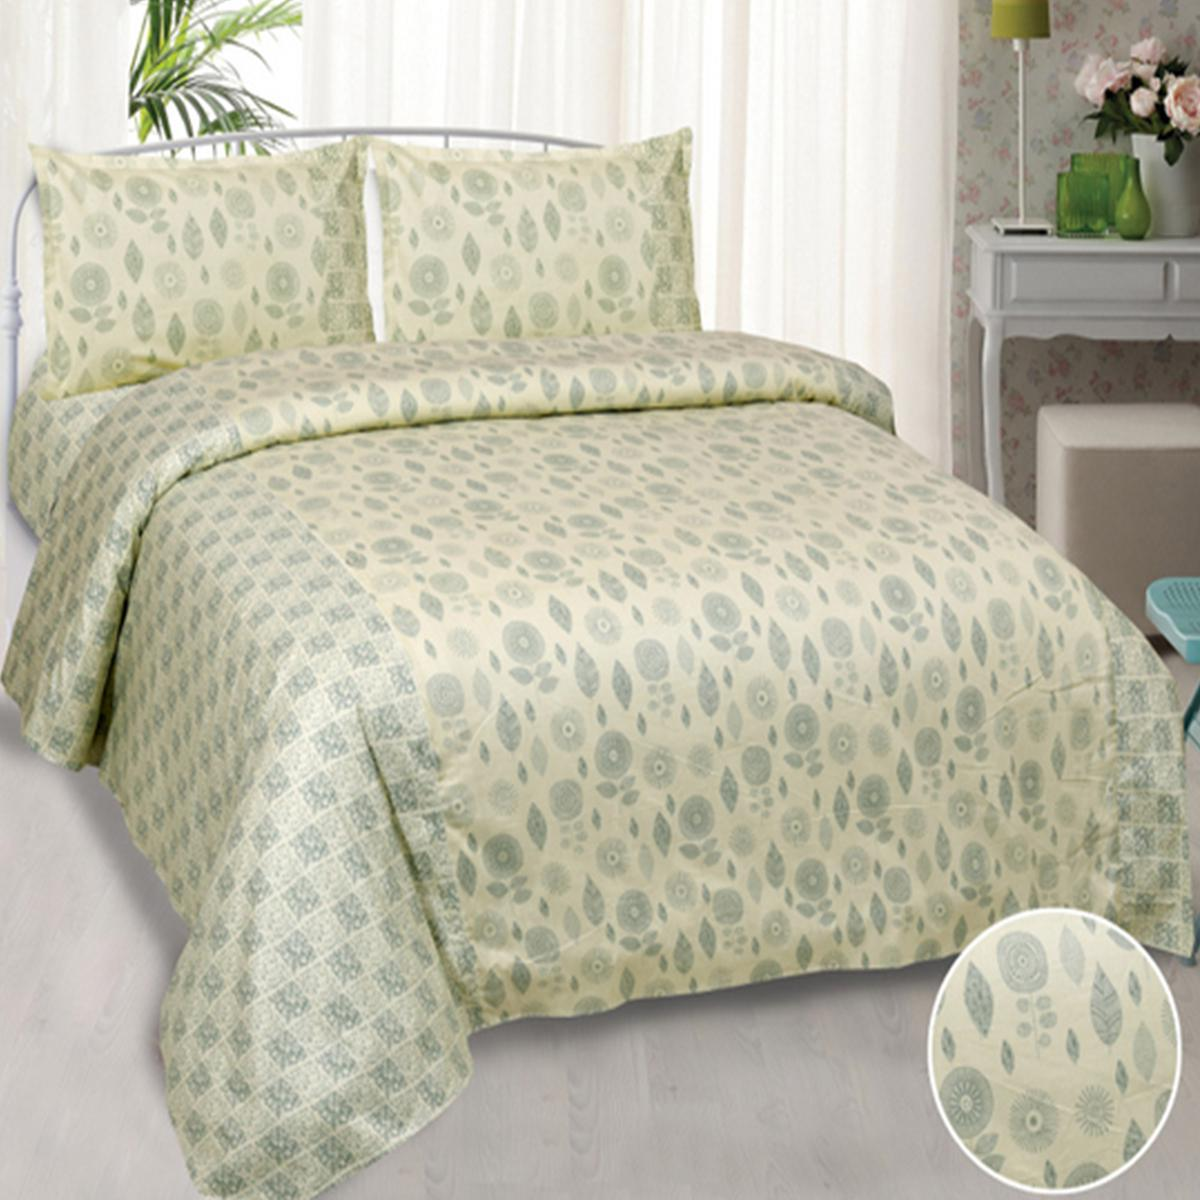 Jaipur Fabric Sensational Pastel Grey Pure Cotton King Size Double Bedsheet with 2 Pillow Cover